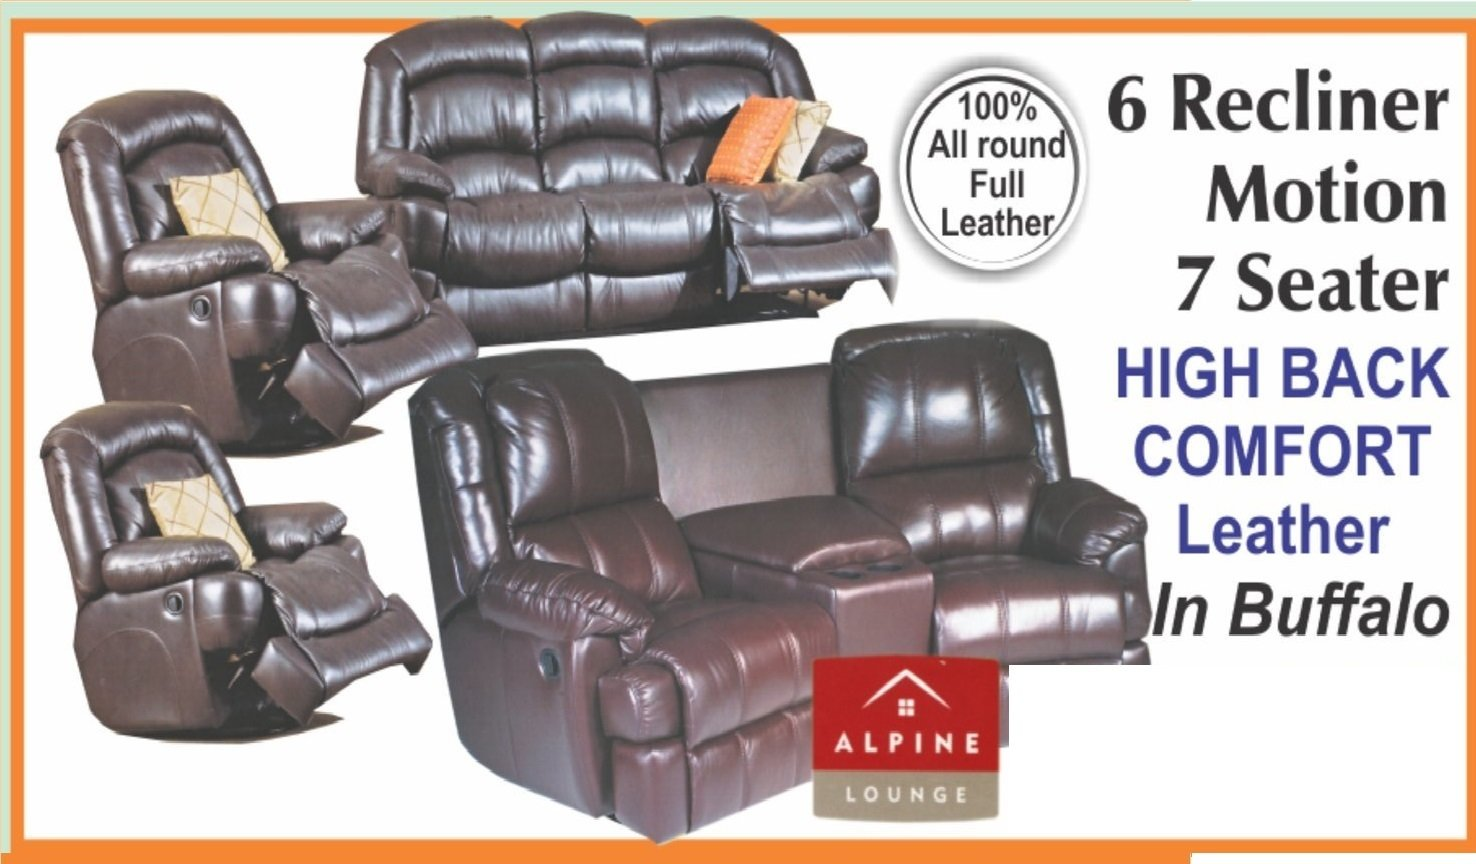 6 Recliners Motion 7 Seater with Trade-Inn